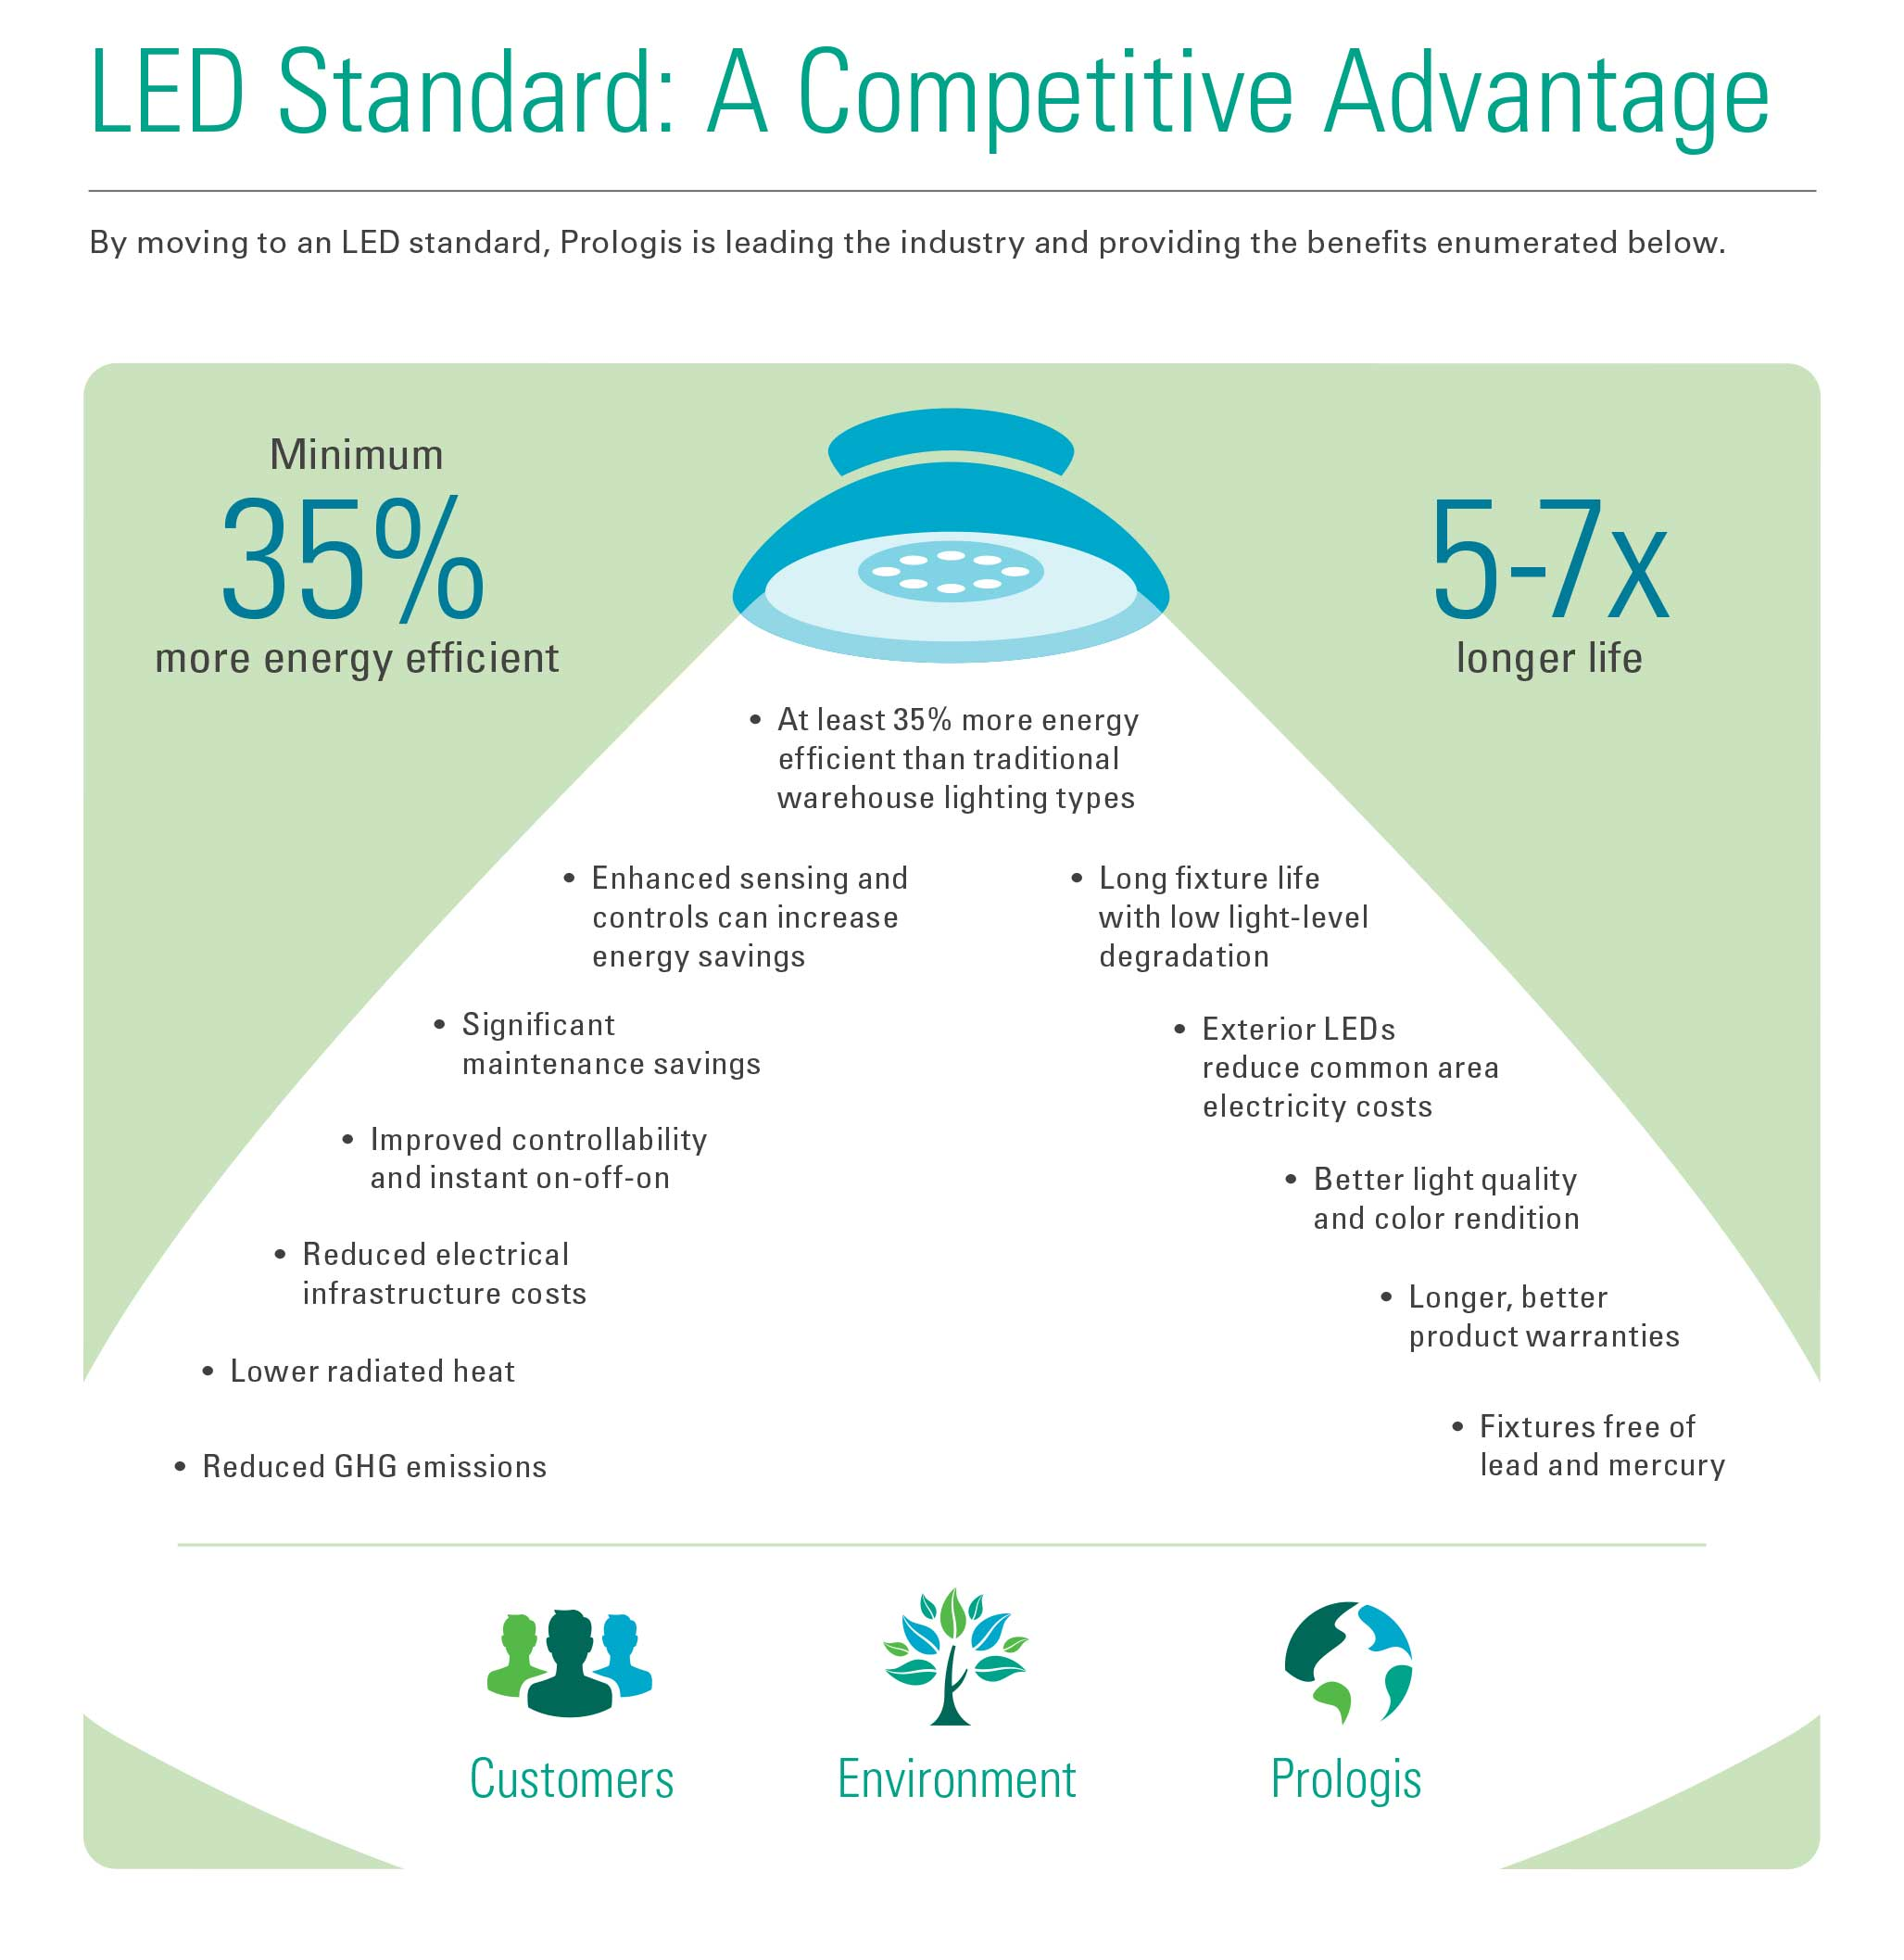 LED Standard: A Competitive Advantage Infographic